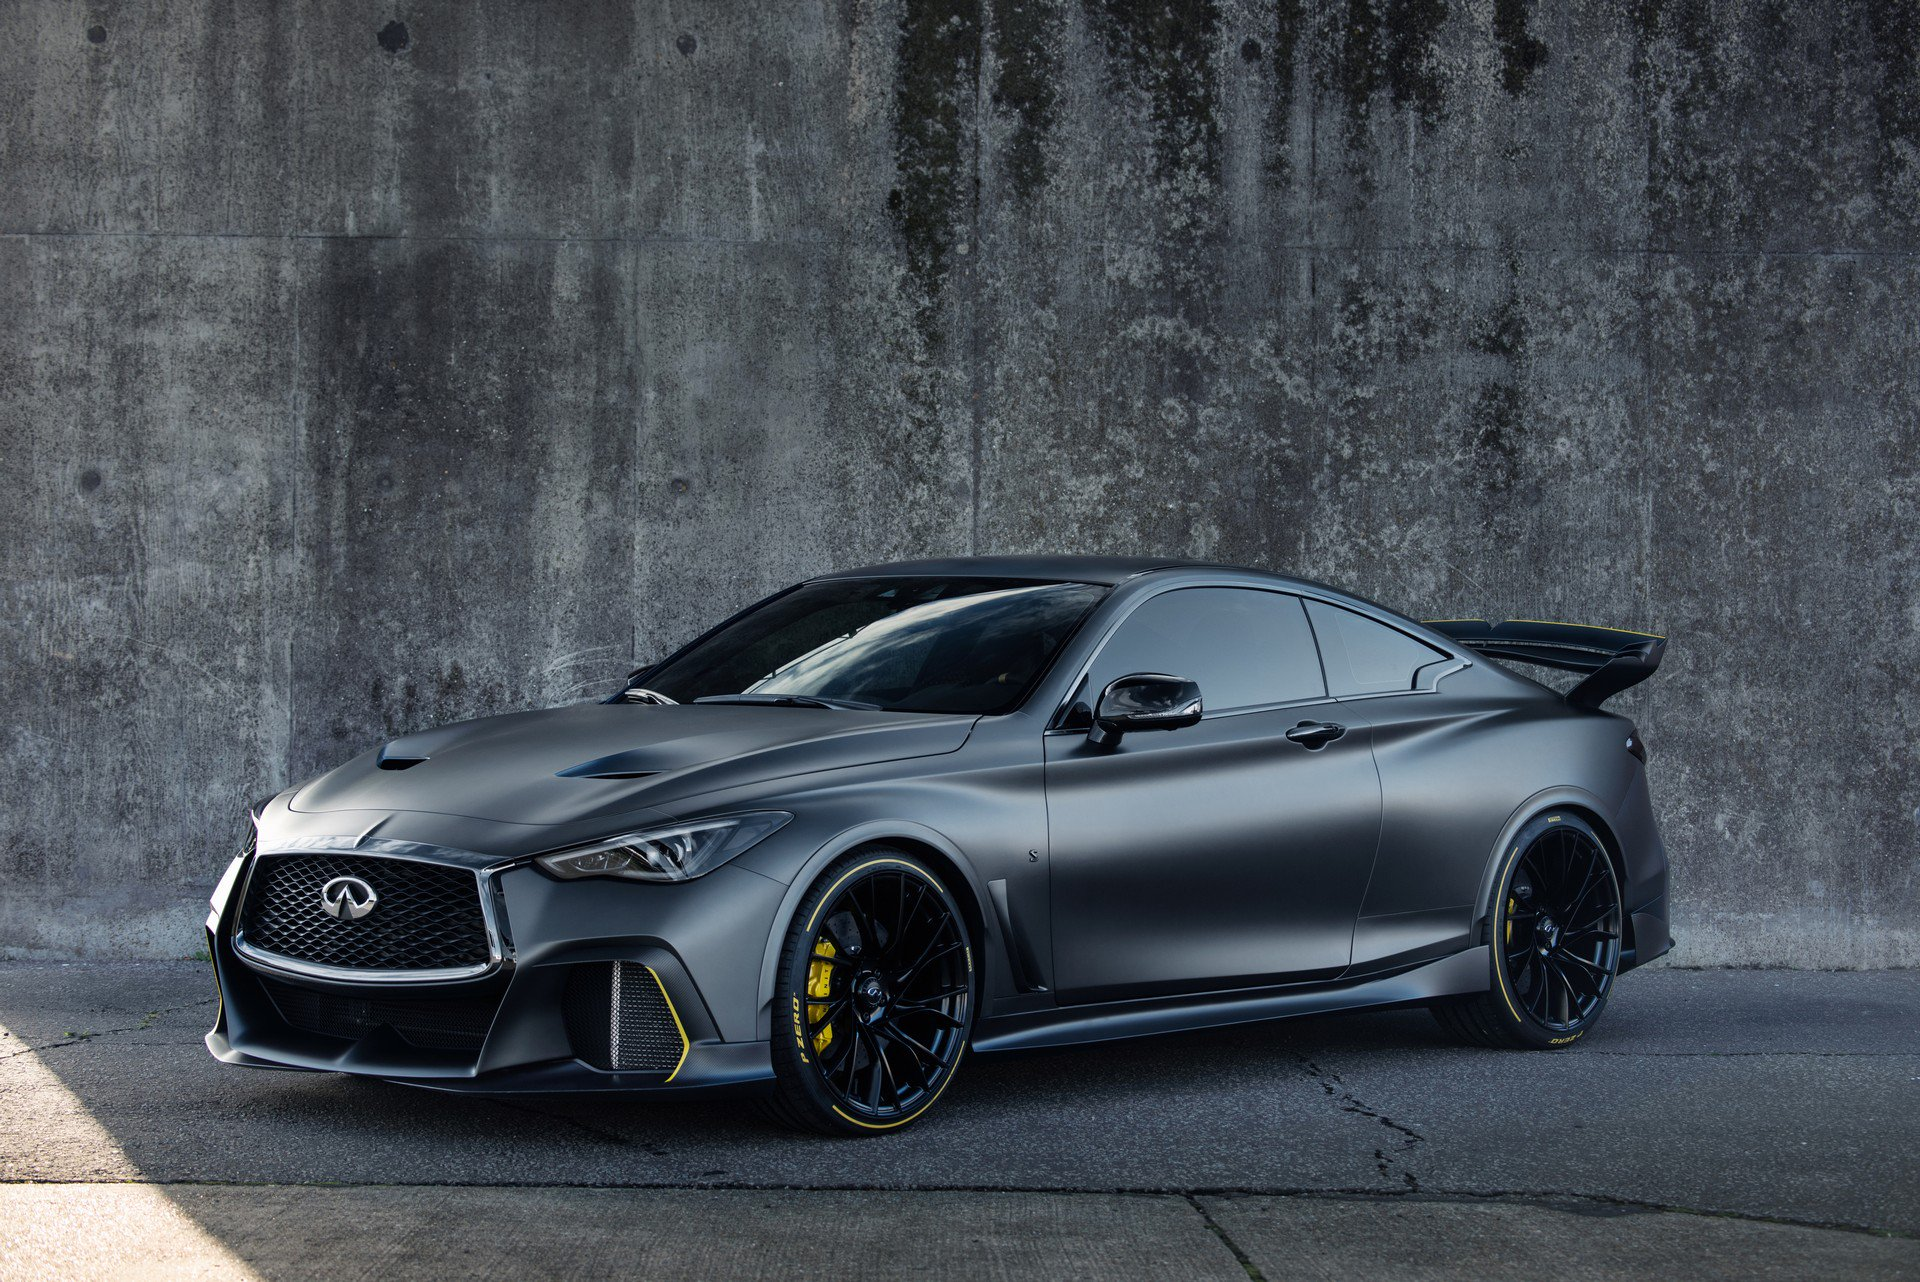 Infiniti Project Black S Prototype (10)